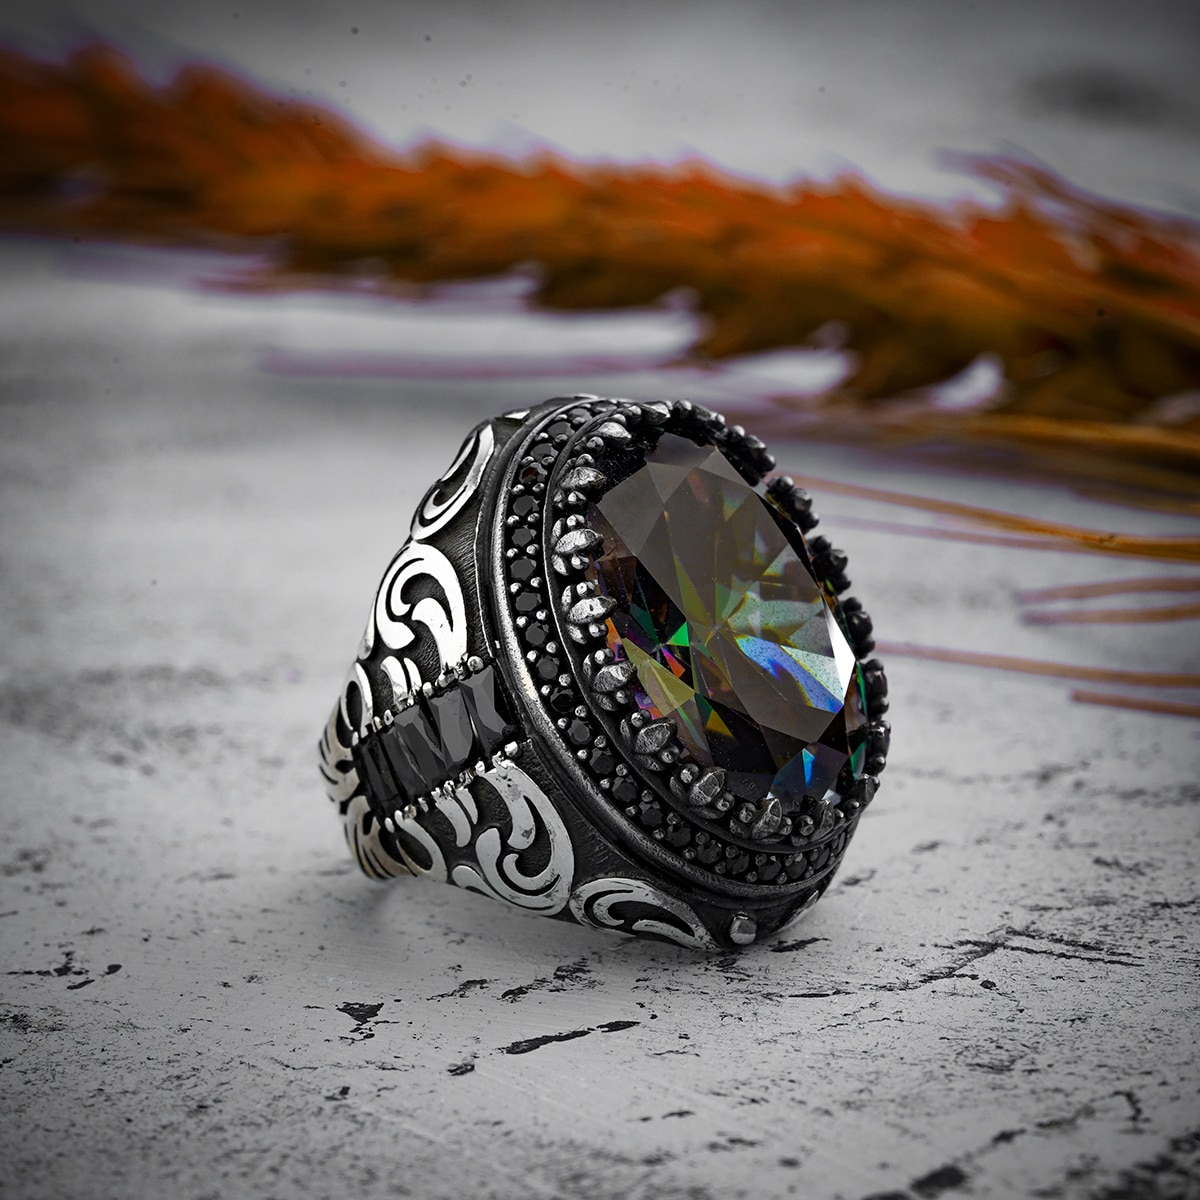 Guaranteed High-quality 925 Sterling Silver TOPAZ STONE ring Jewelry Made in Turkey in a luxurious way for men with gift